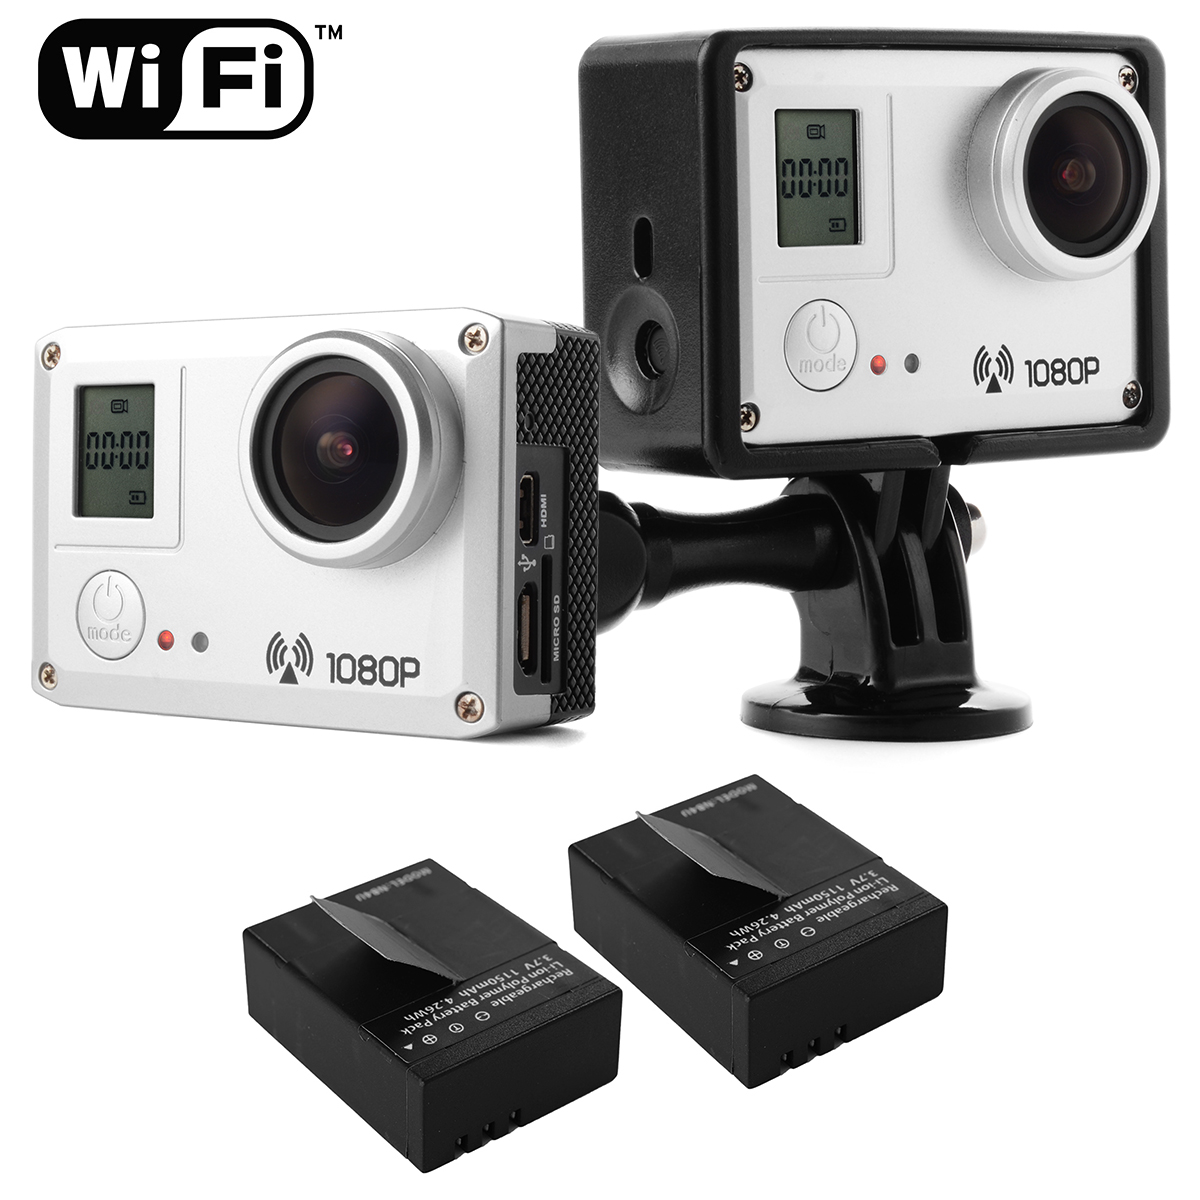 Silver WIFI 20MP Full HD 1080P H.264 170 Degree Wide Angle Action Sport Camcorder Camera Waterproof 30M LF717(China (Mainland))